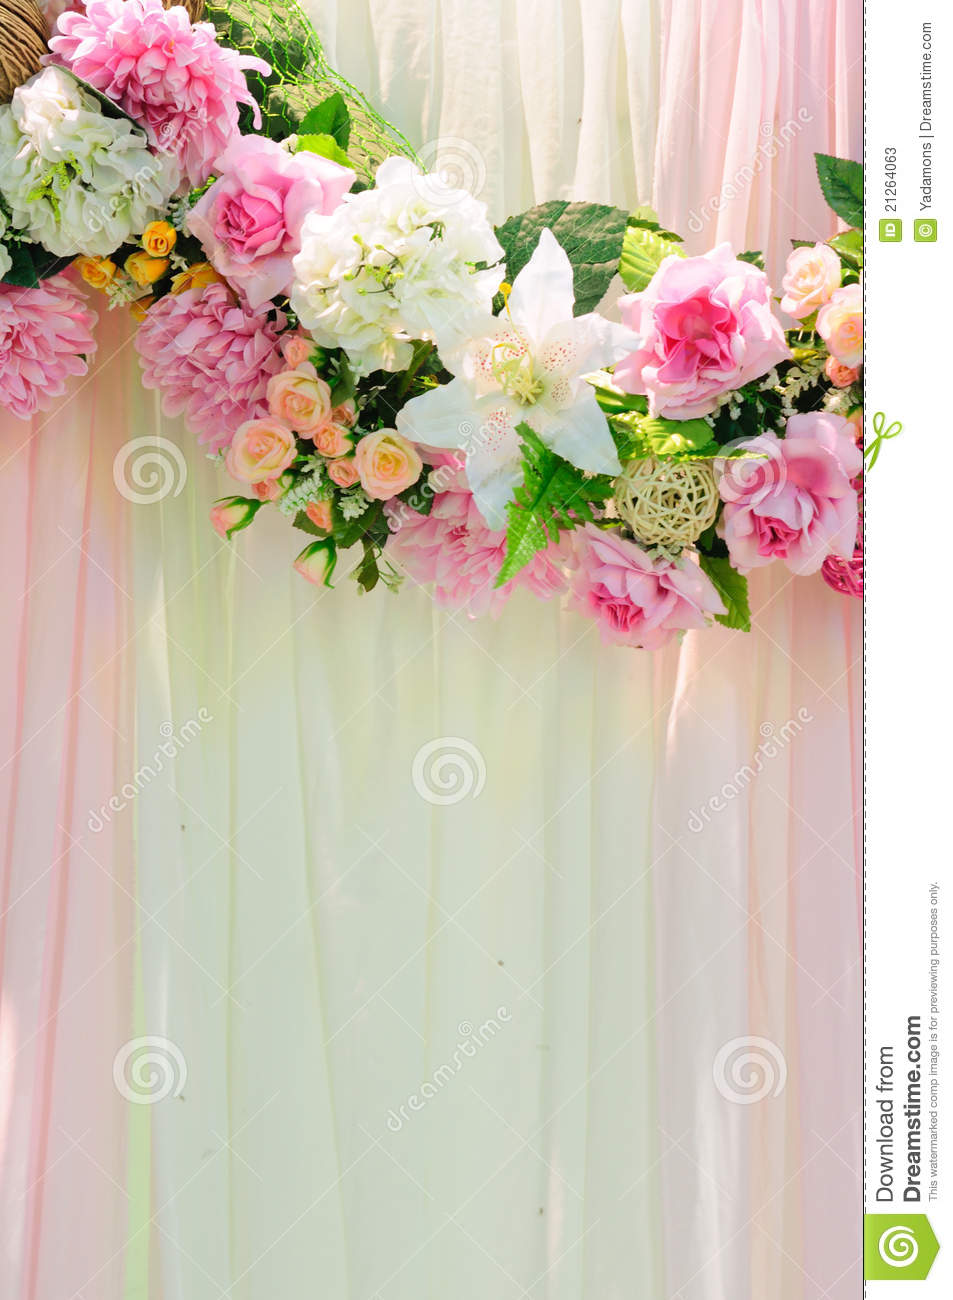 Love Wallpapers Vertical : Vertical Wedding Scene Background Stock Image - Image of ...